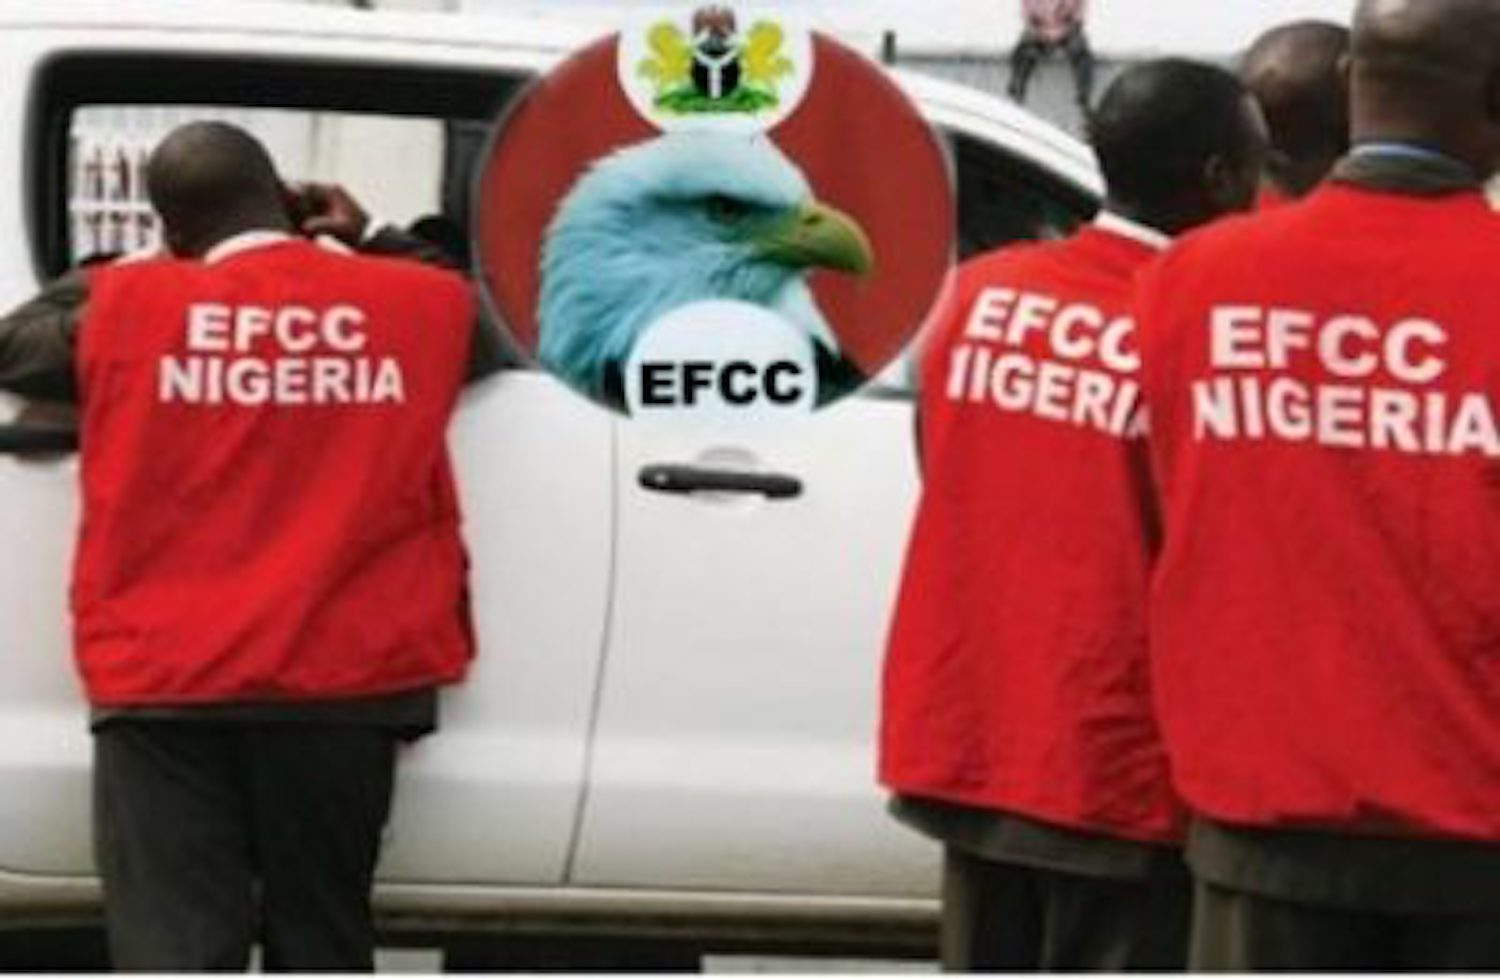 EFCC arrests 3 suspected 'Yahoo boys' in Abuja